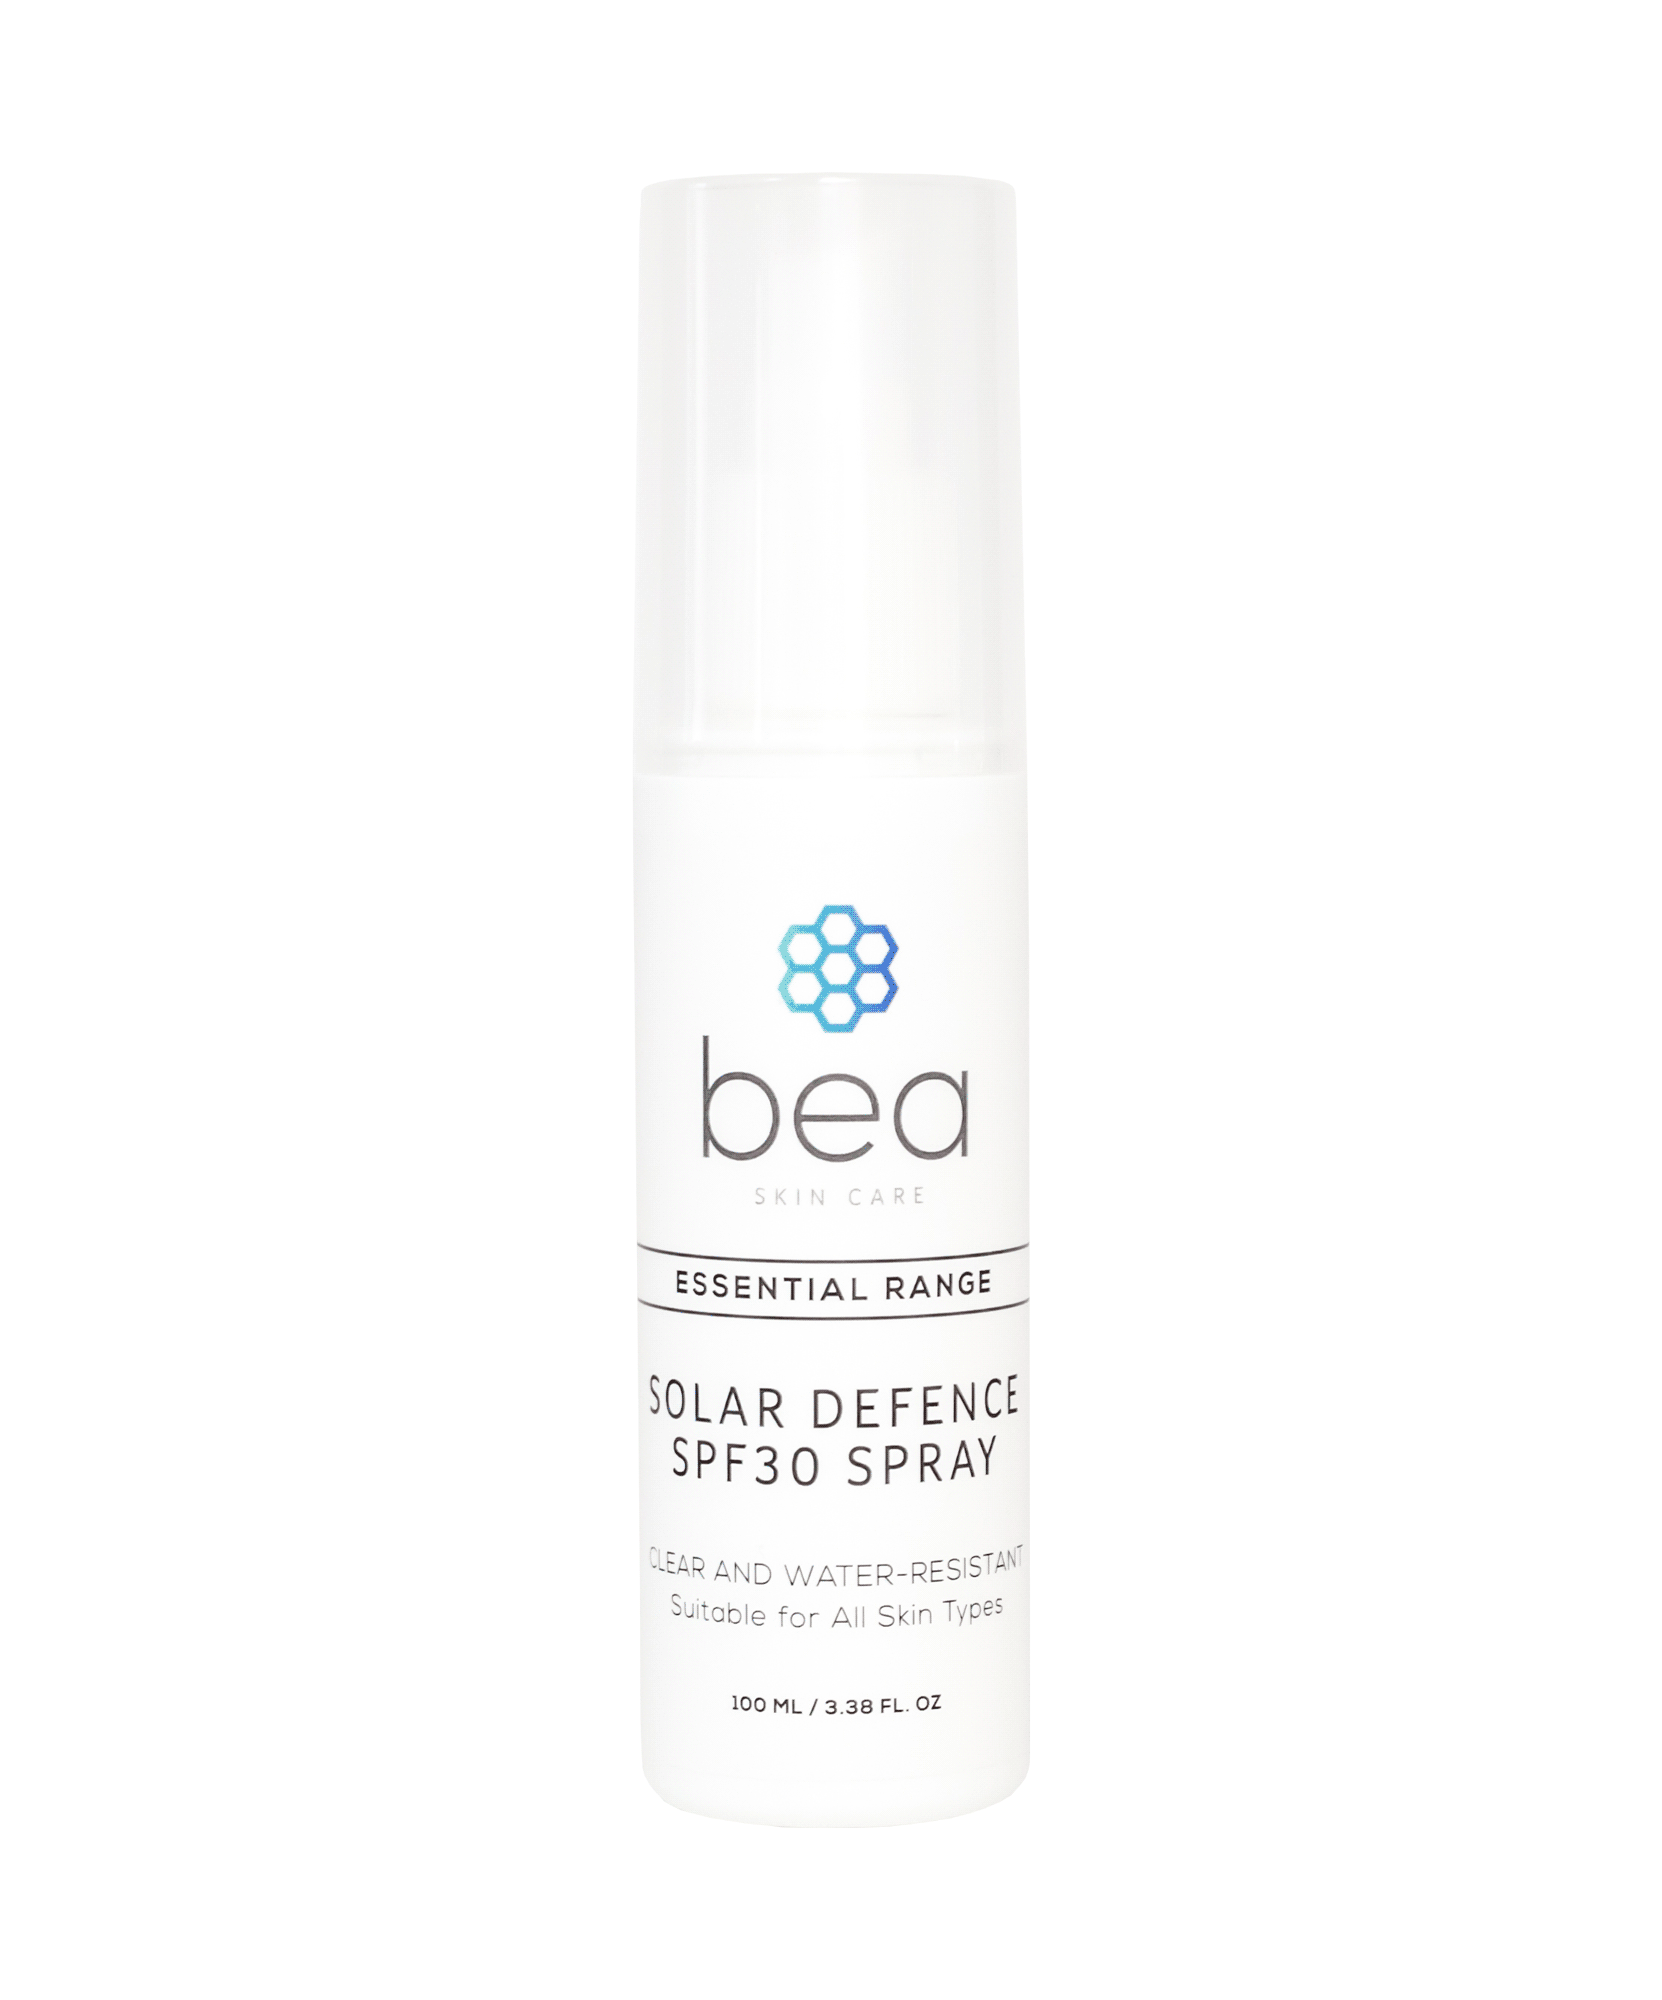 Solar Defence SPF 30 Mist Spray - 100 ml Sunscreen bea Skin Care